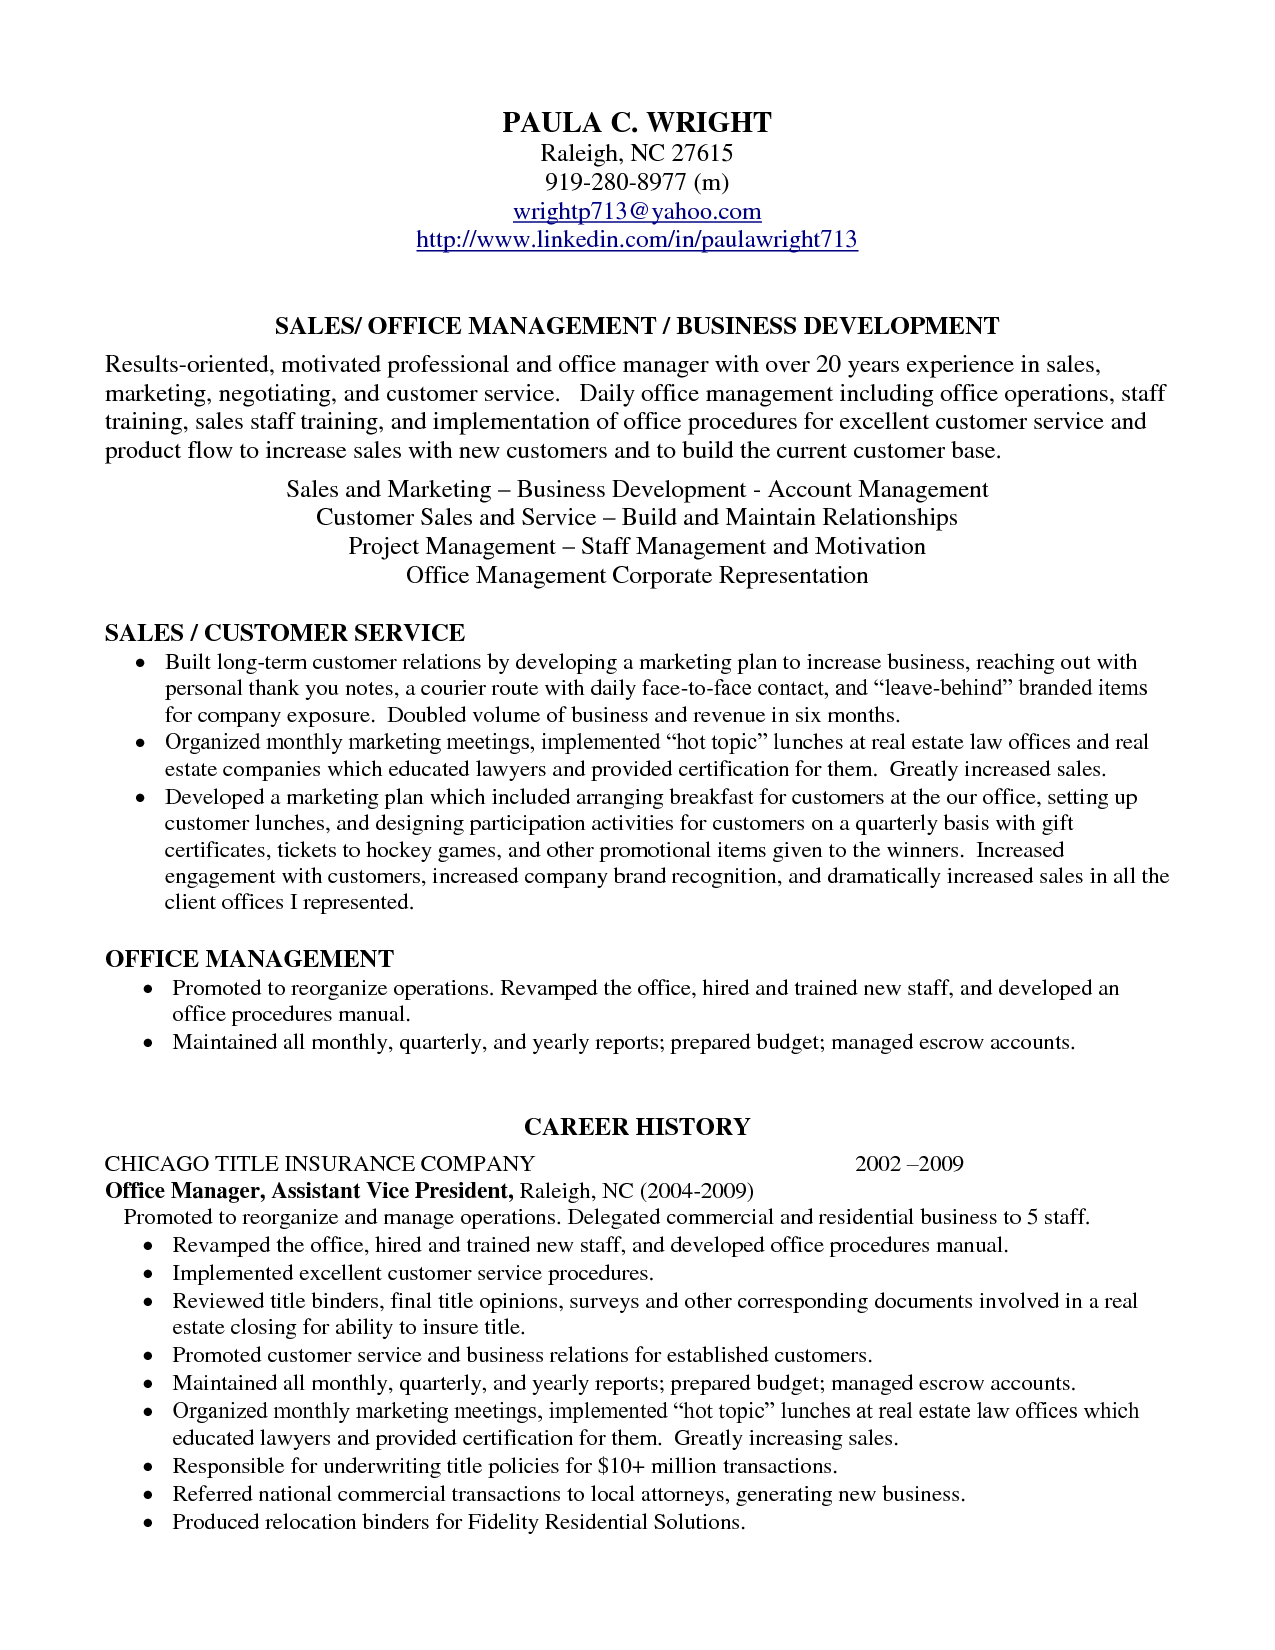 Sales And Marketing Resume Professional Profile Resume Examplesresume Professional Profile